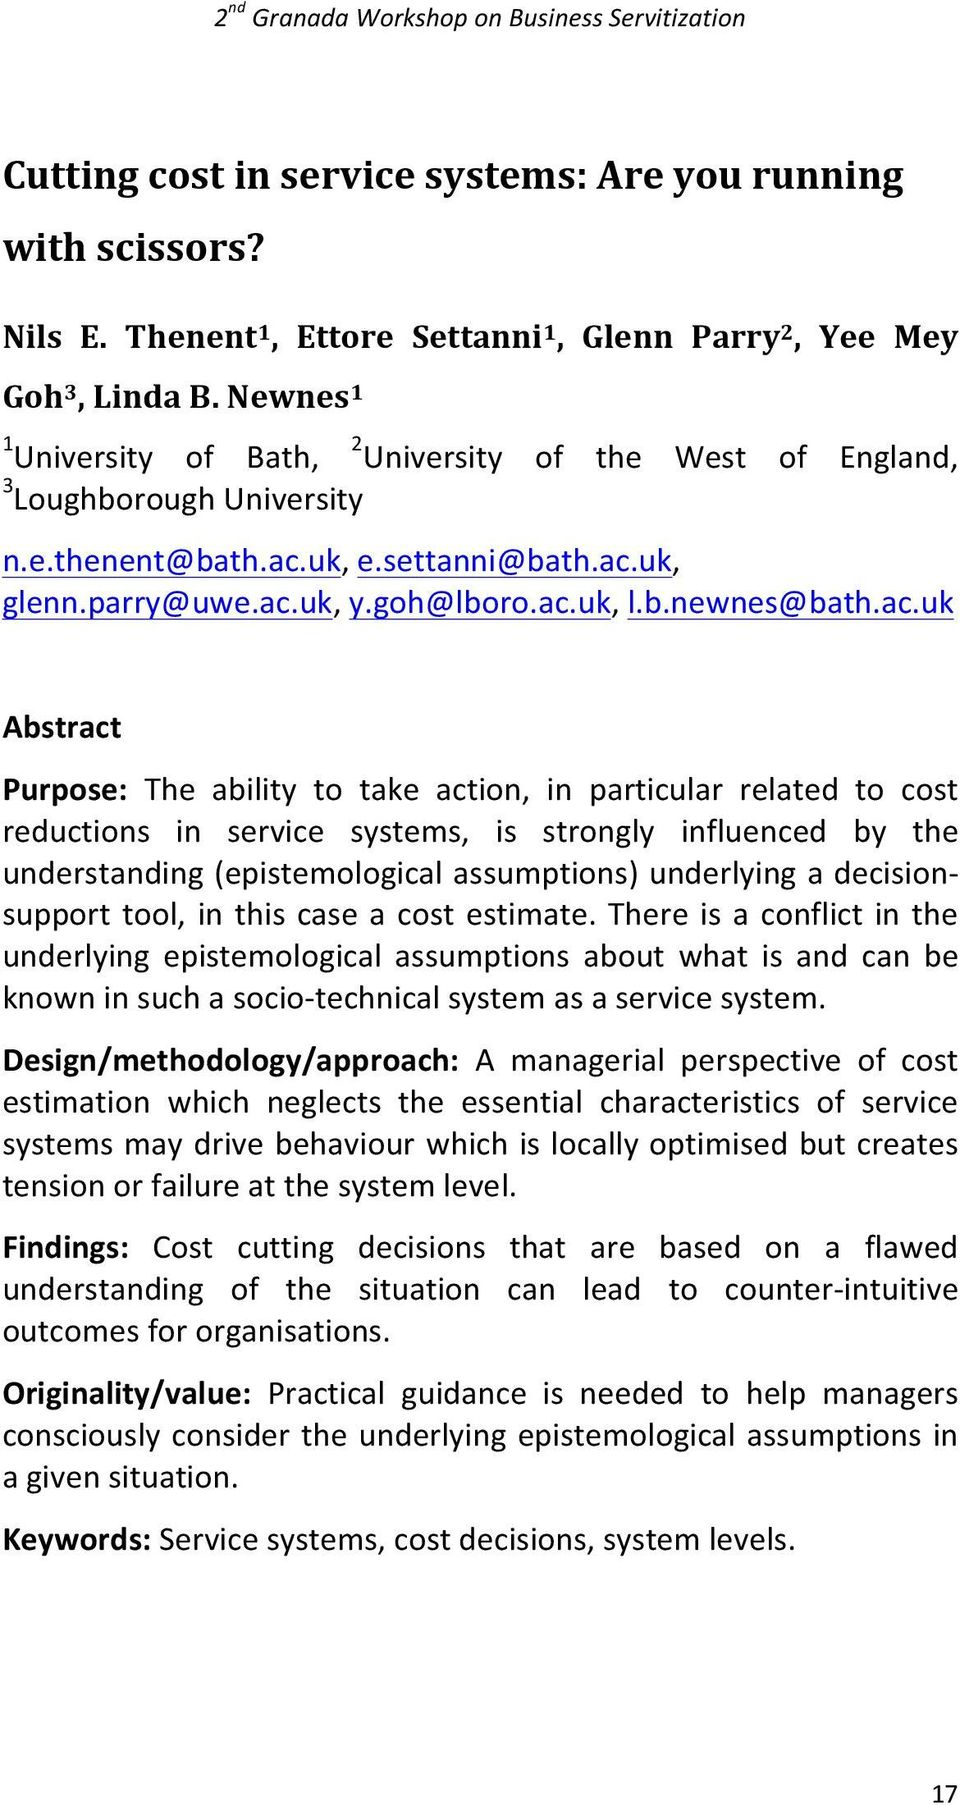 ac.uk Abstract Purpose: The ability to take action, in particular related to cost reductions in service systems, is strongly influenced by the understanding (epistemological assumptions) underlying a